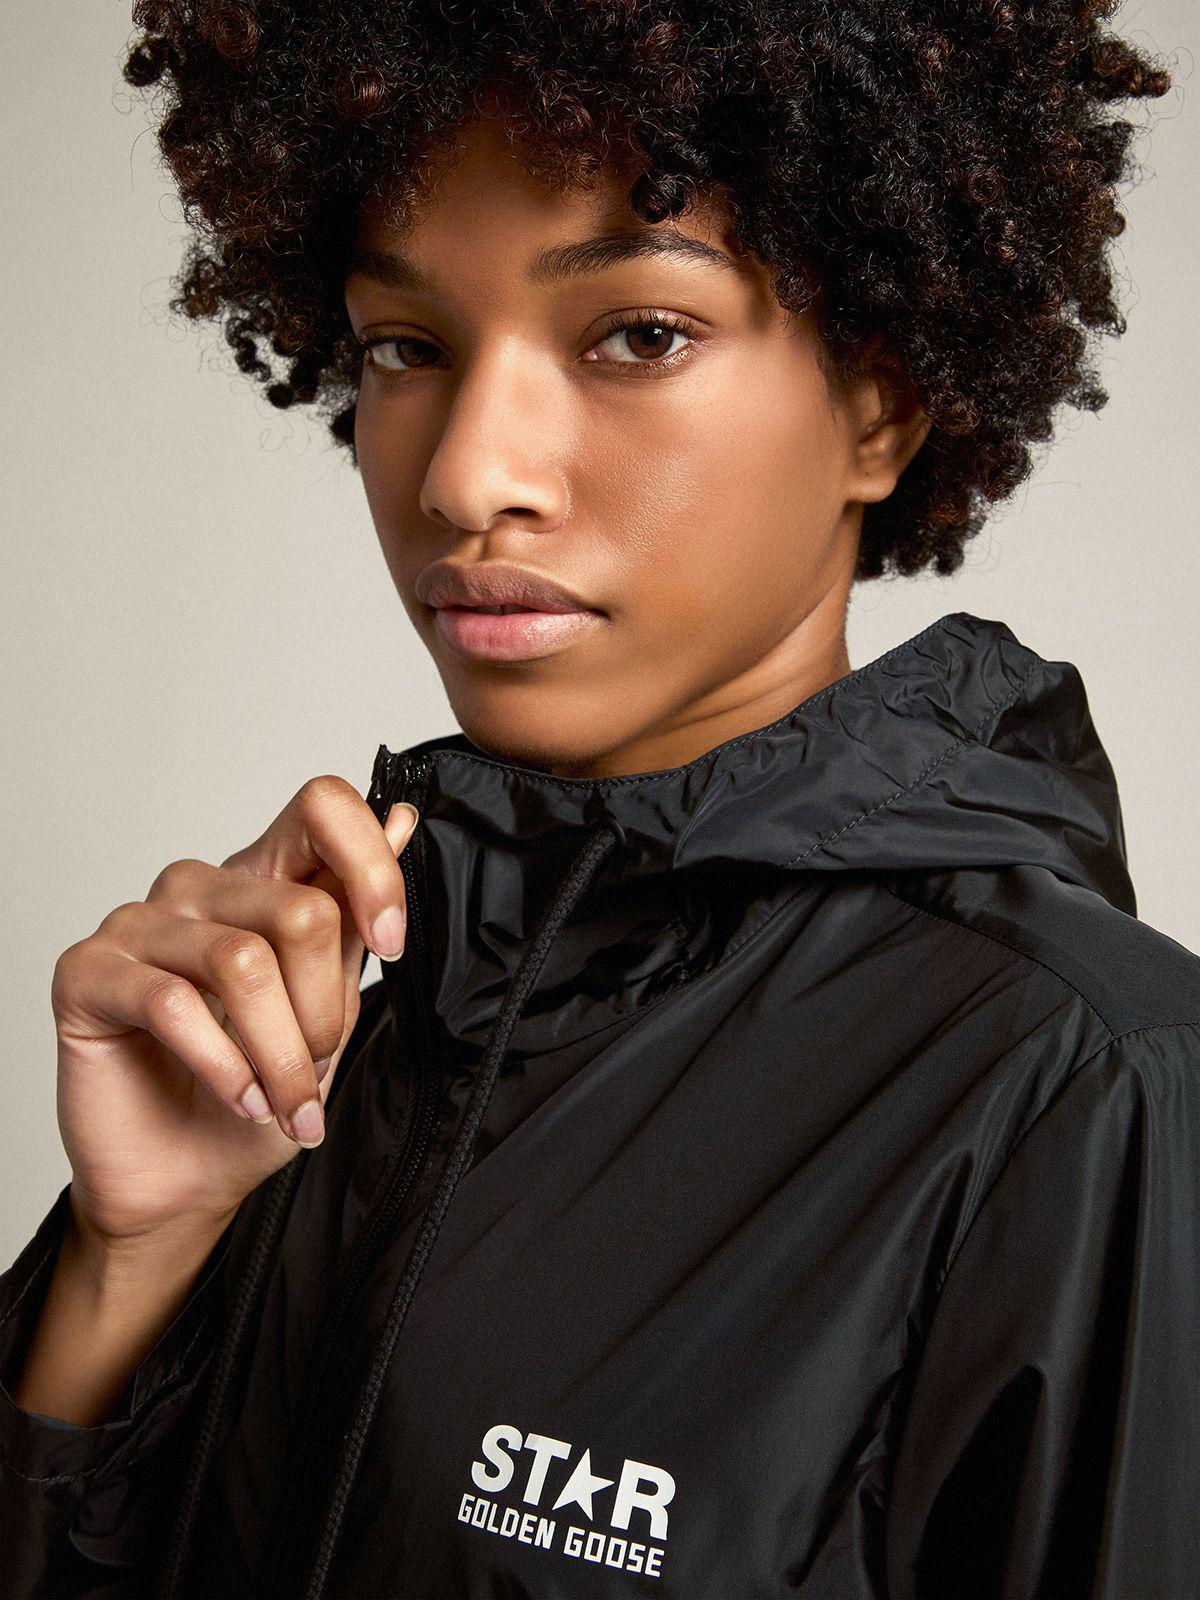 Daris Star Collection windcheater in black nylon with contrasting white logo and star